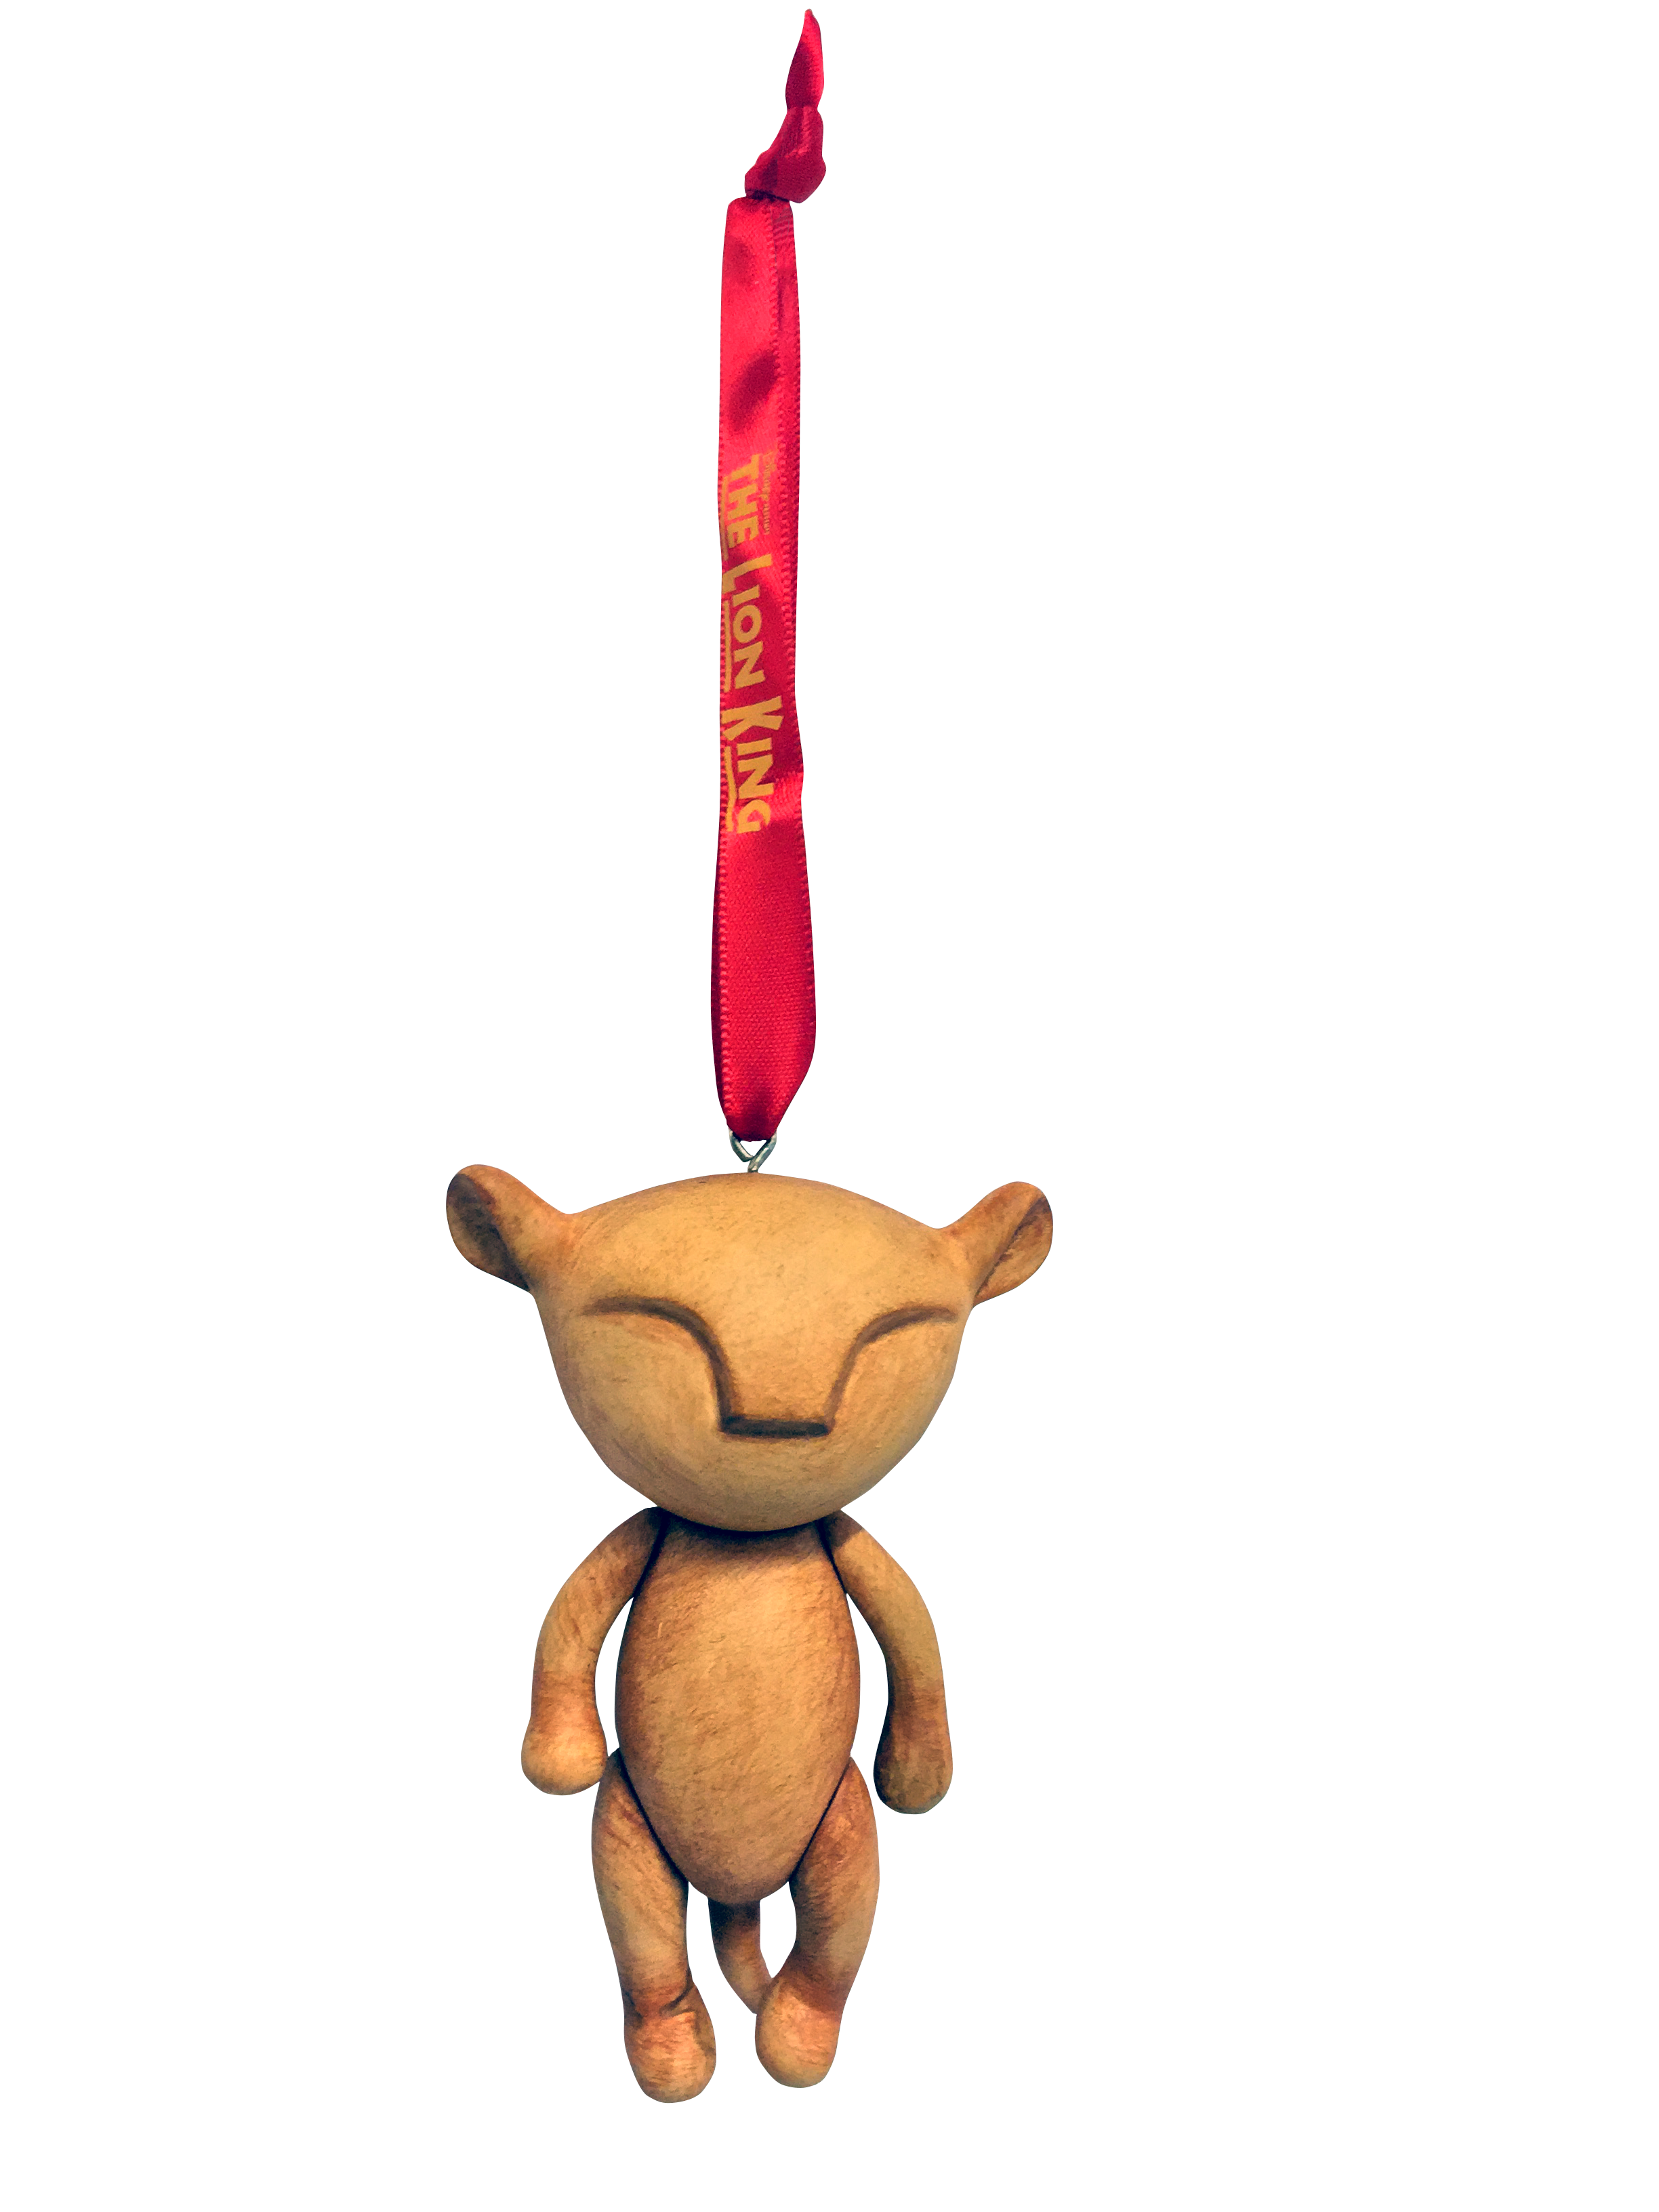 Lion King The Broadway Musical Baby Simba Ornament The